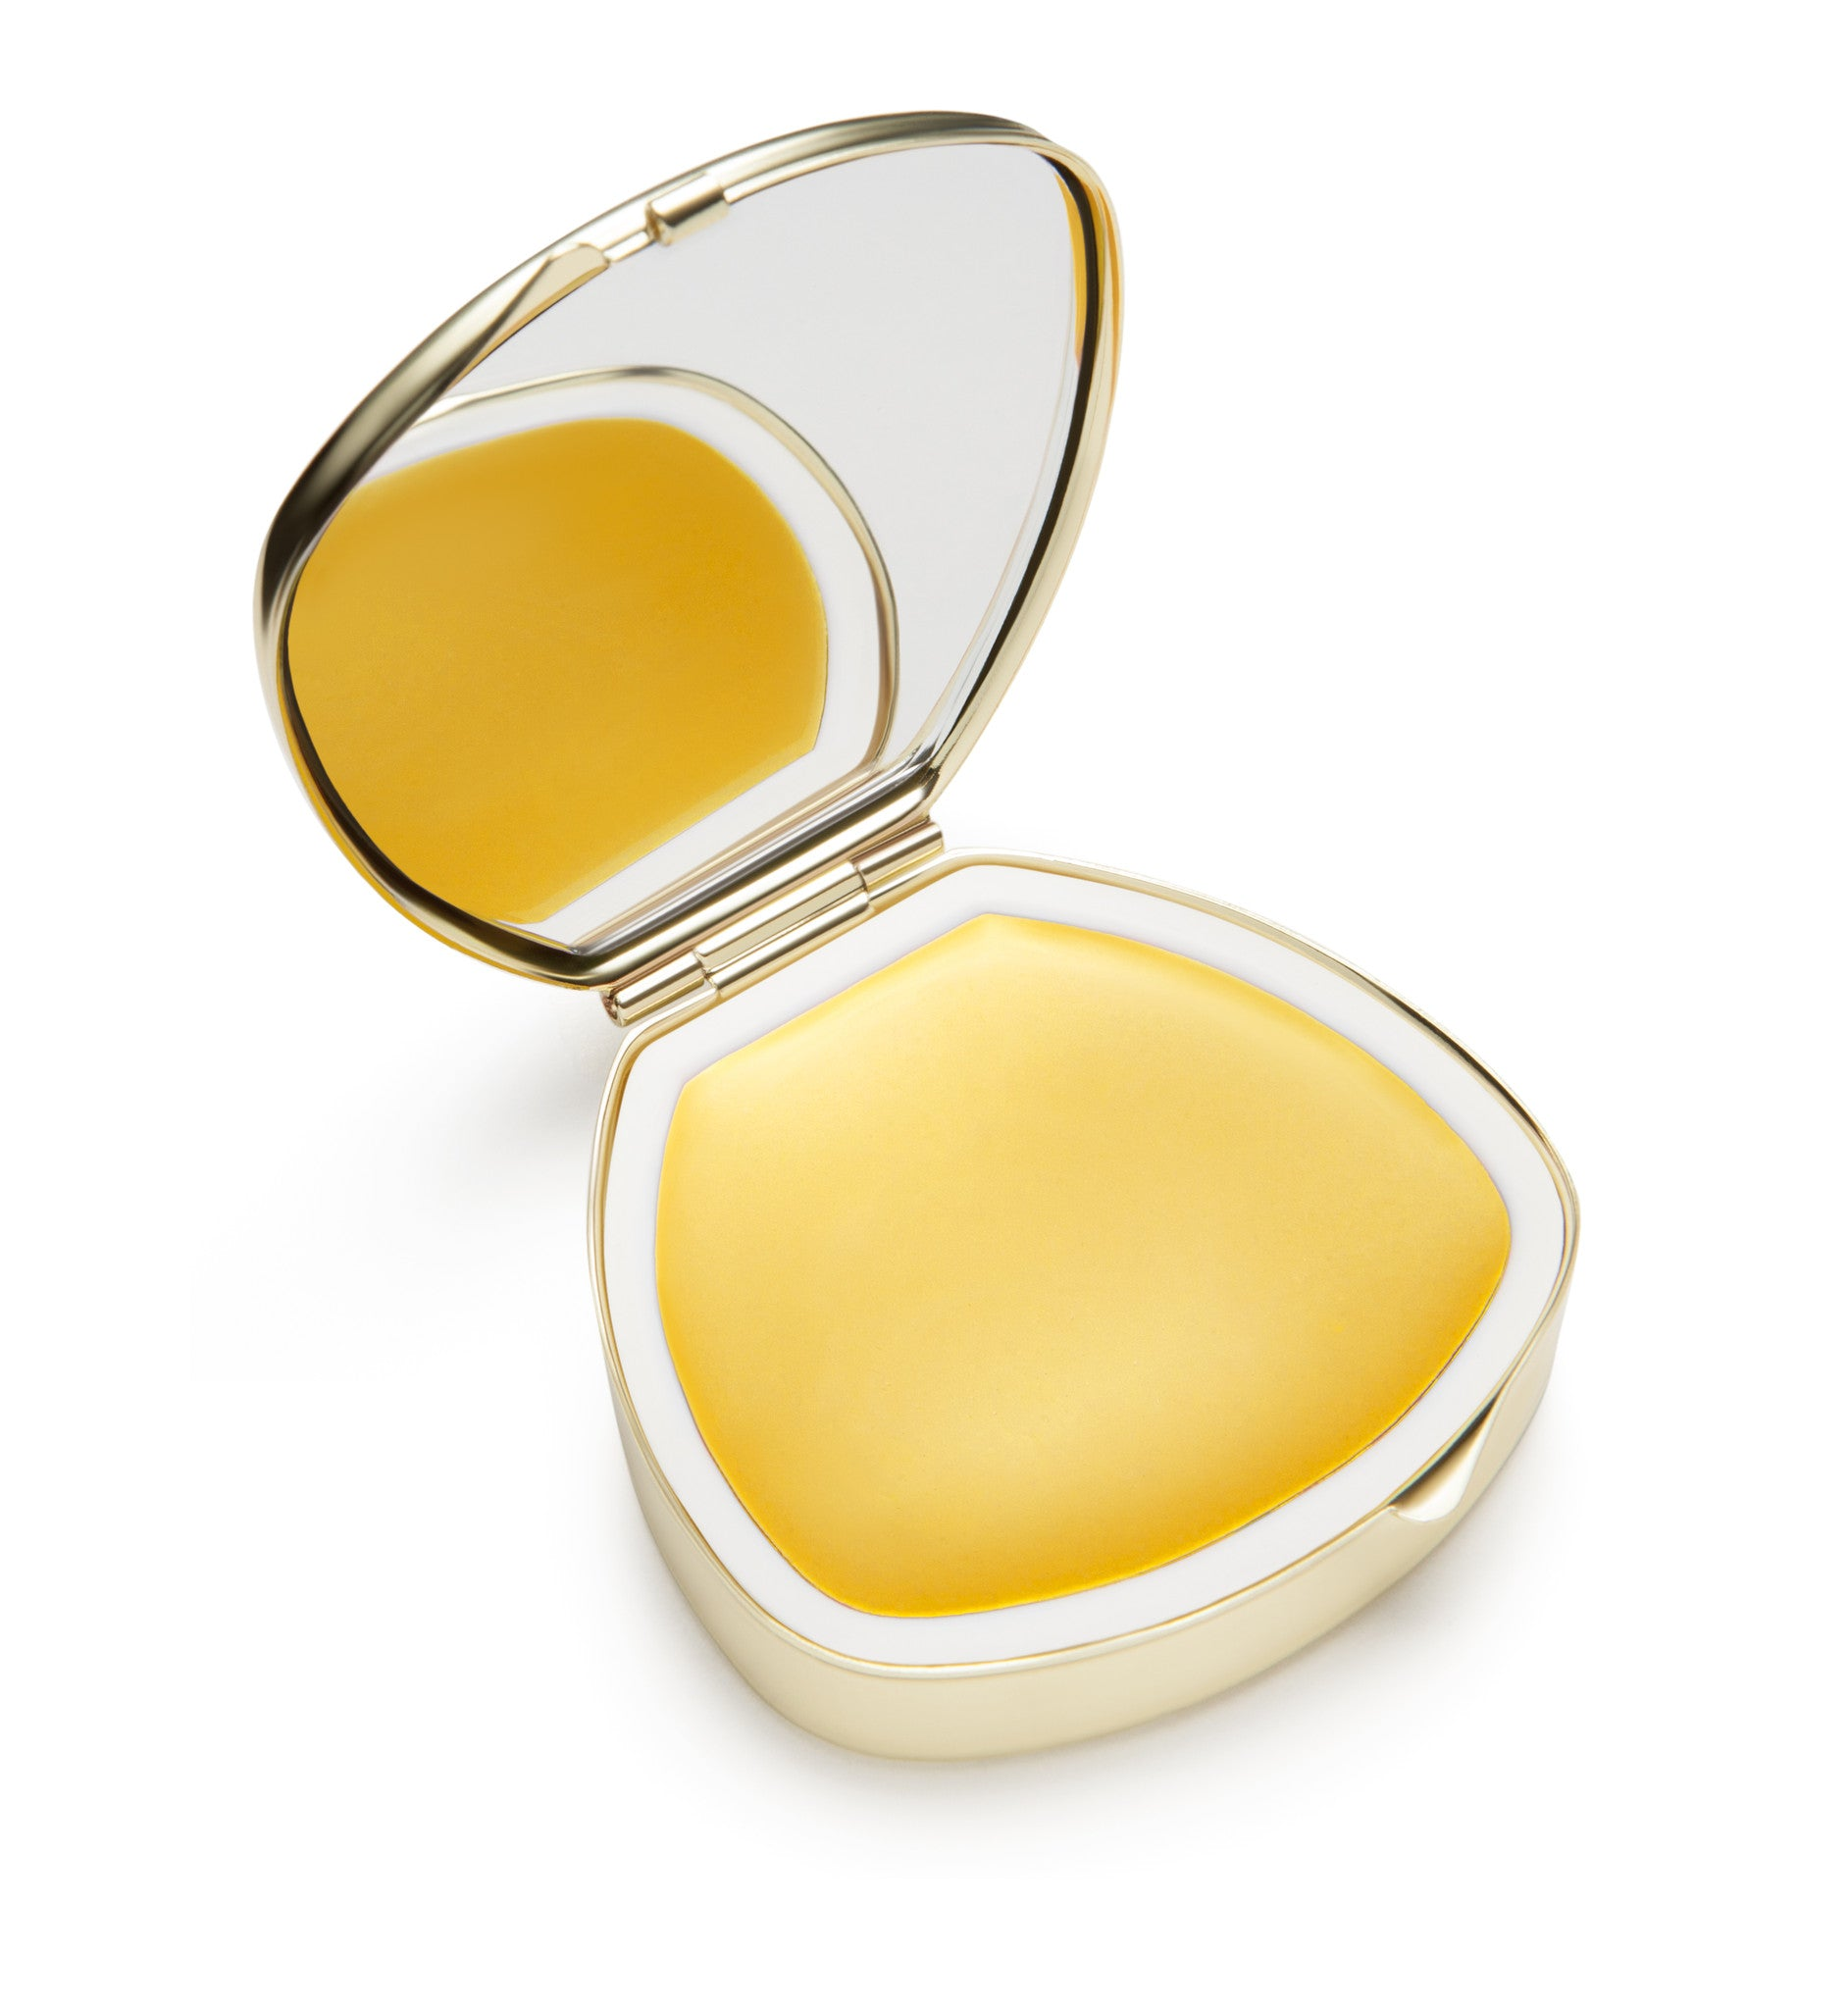 Lip Balm Compact - Drink Me - Andrea Garland